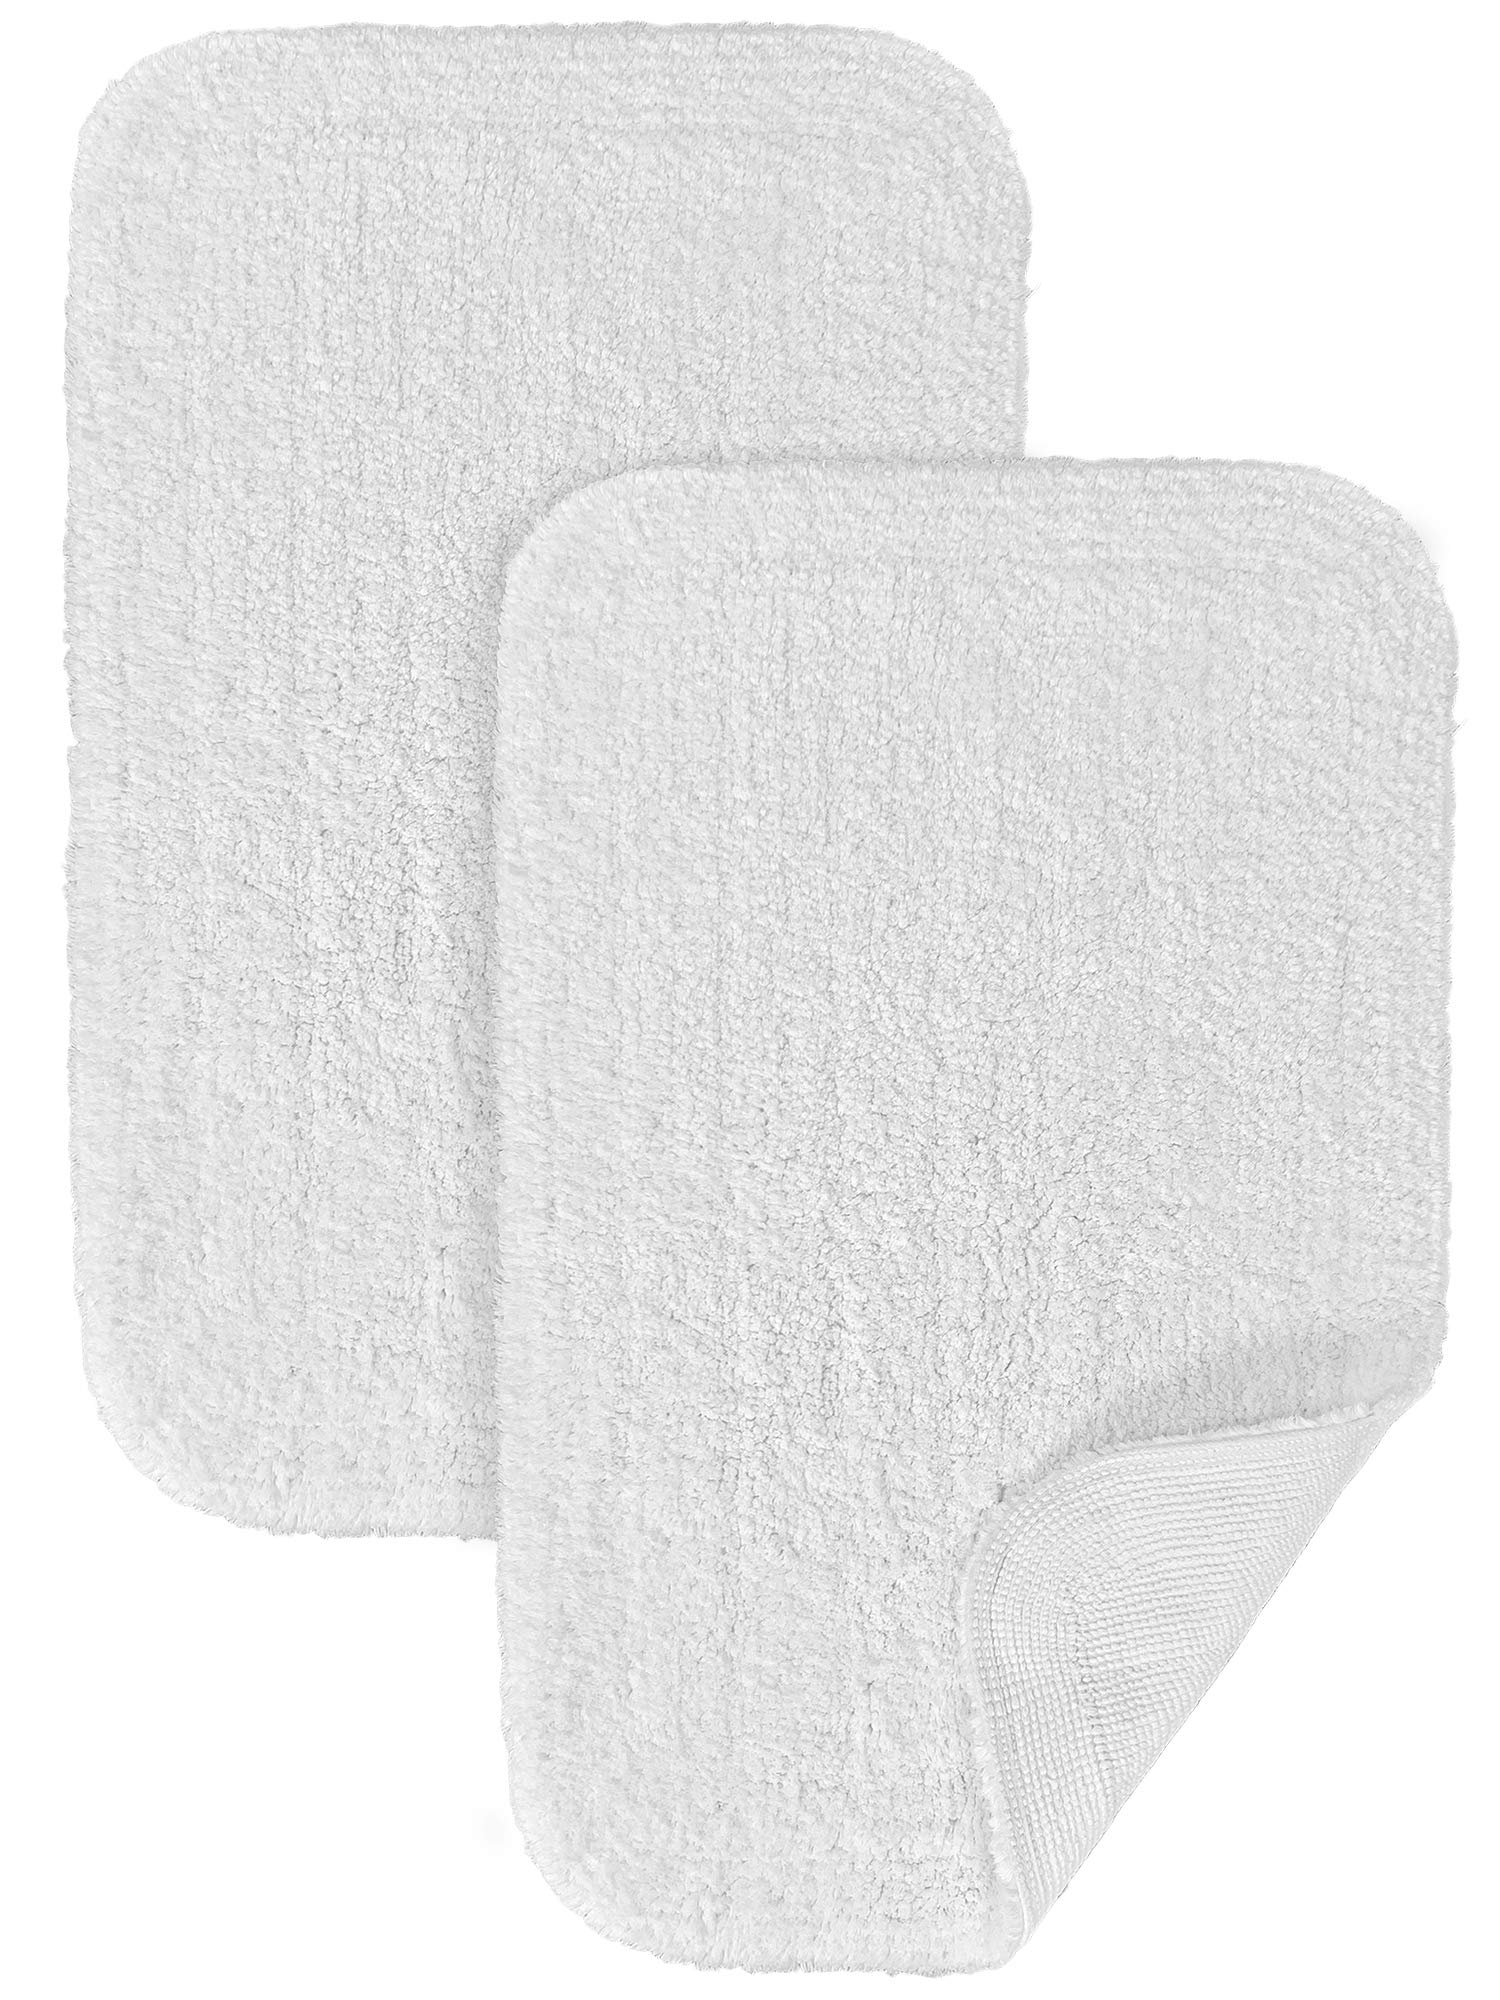 100% Cotton Super Soft and Absorbent Luxury Hotel Collection Bath Rug, White (19.5 x 28 inch) Set of 2